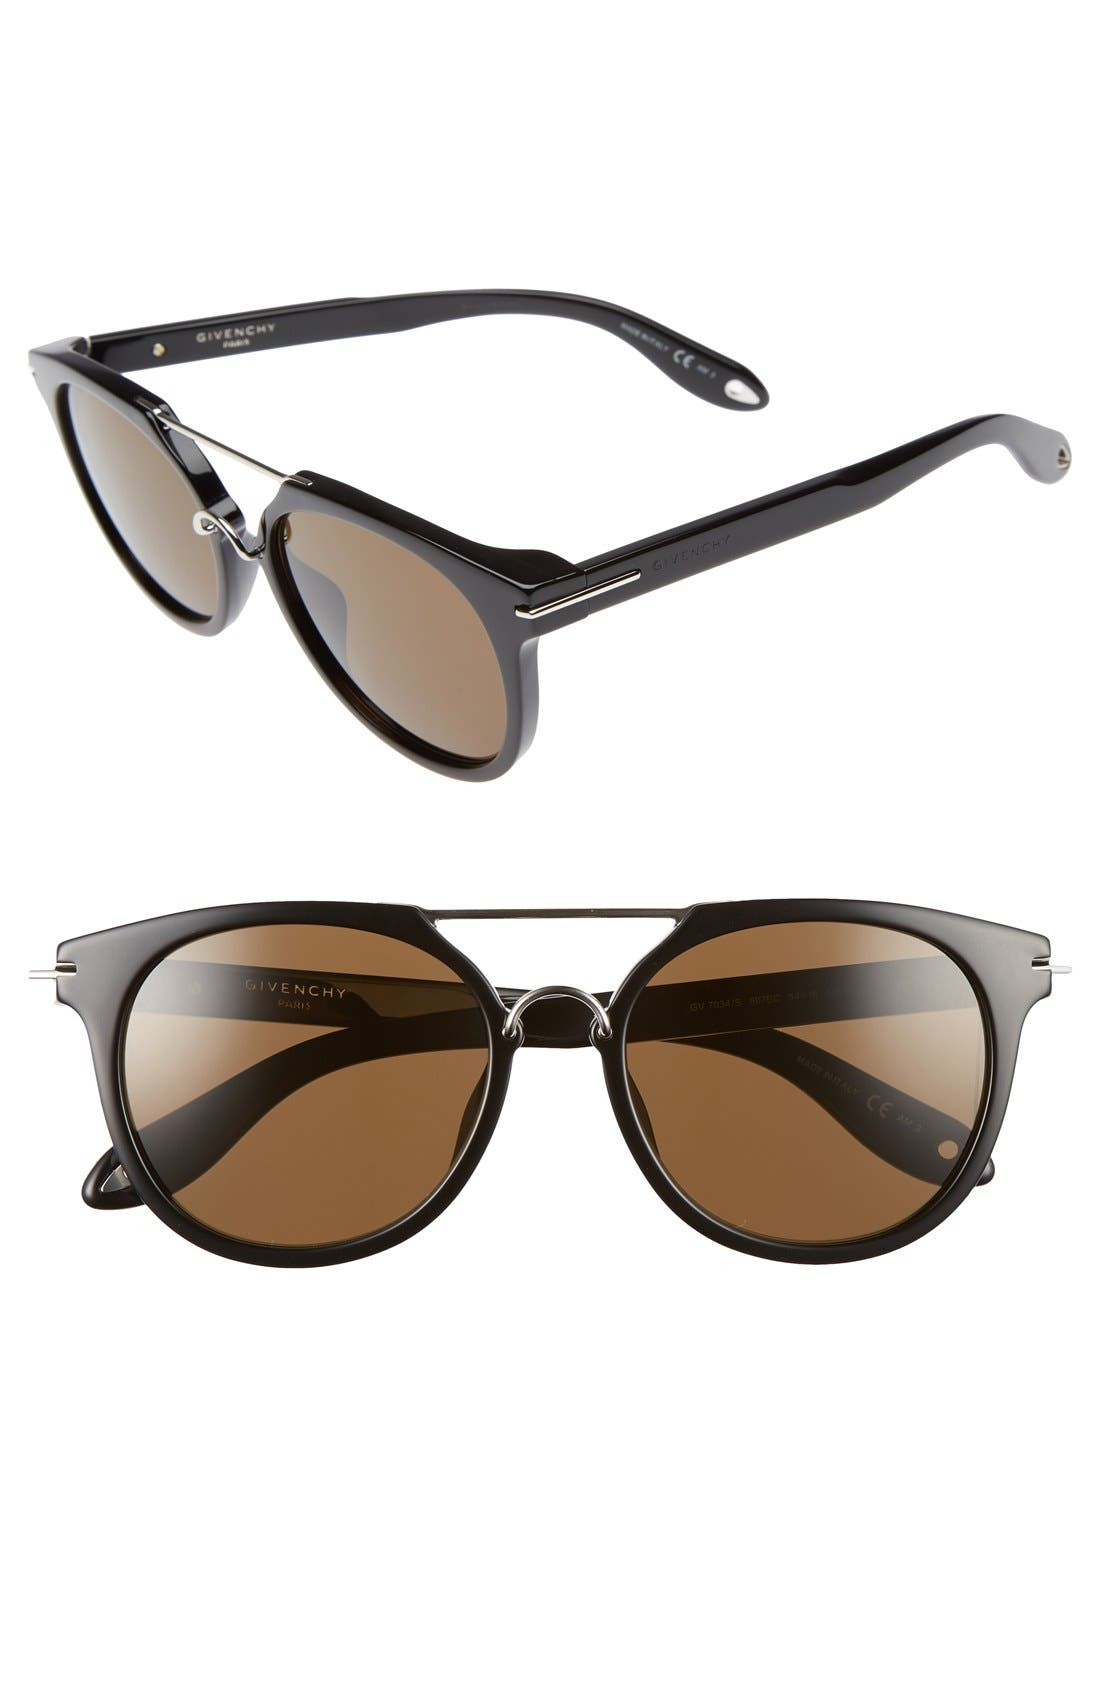 Givenchy 7034/S 54mm Round Sunglasses